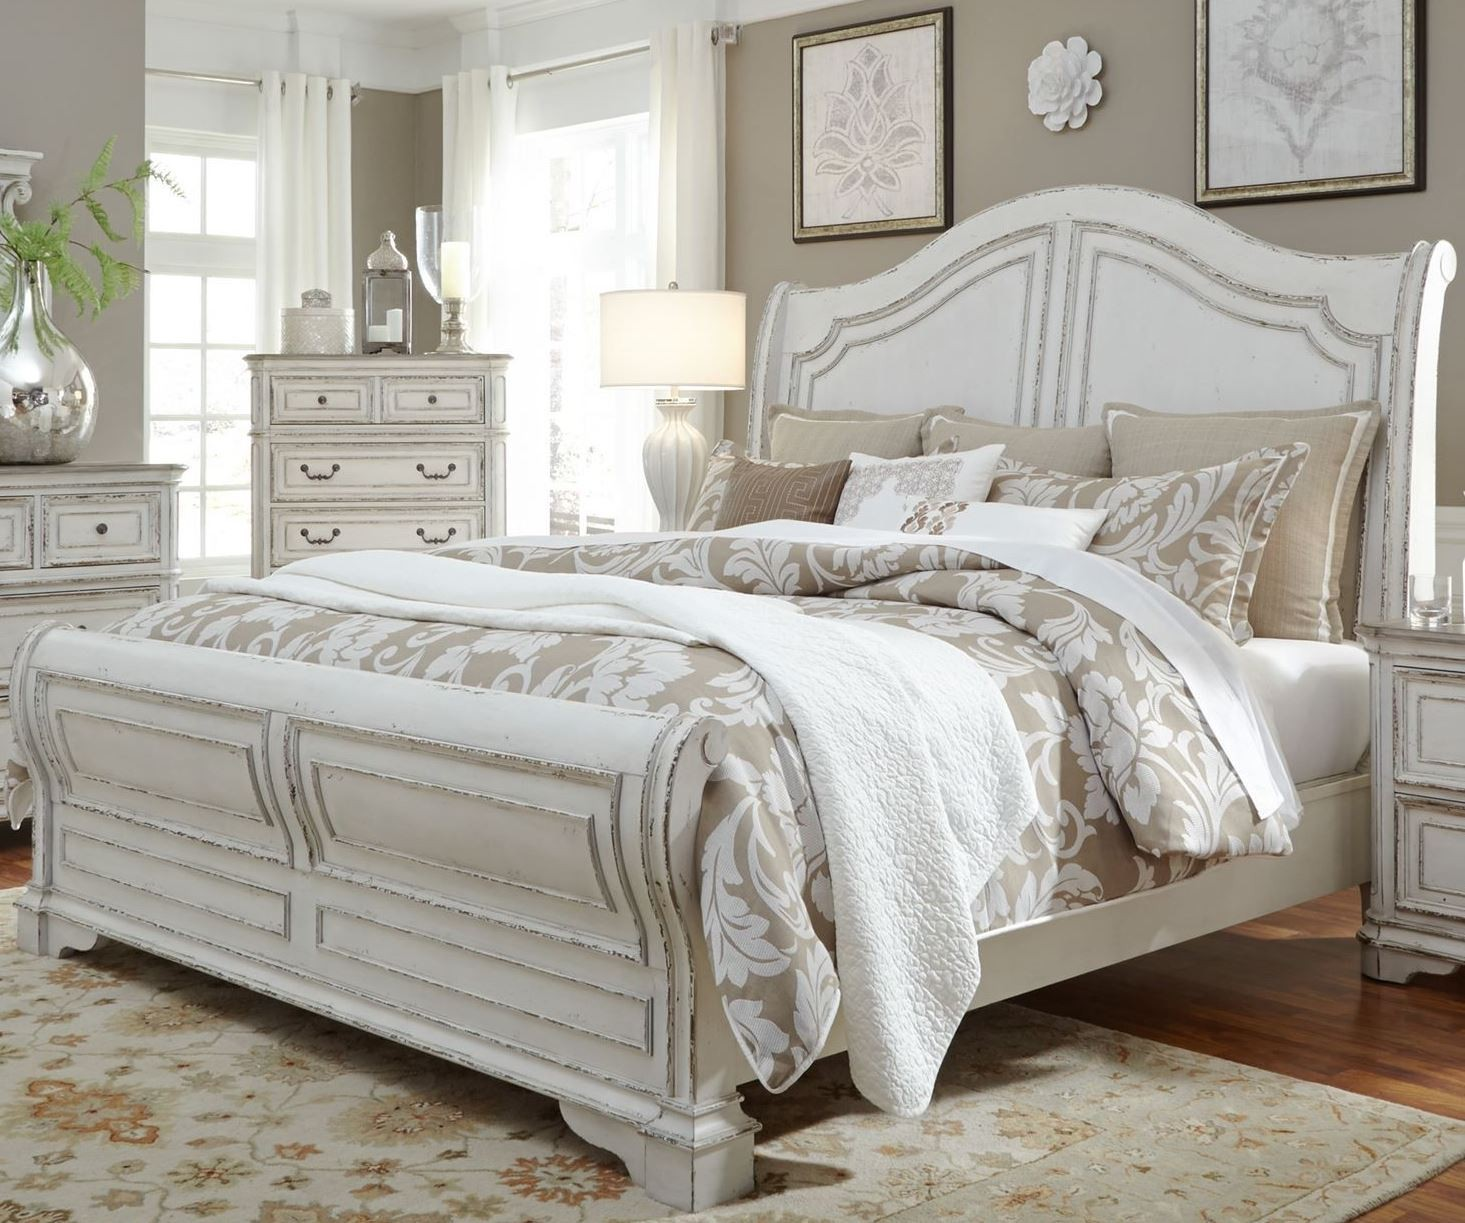 Magnolia Manor Antique White Queen Sleigh Bed From Liberty